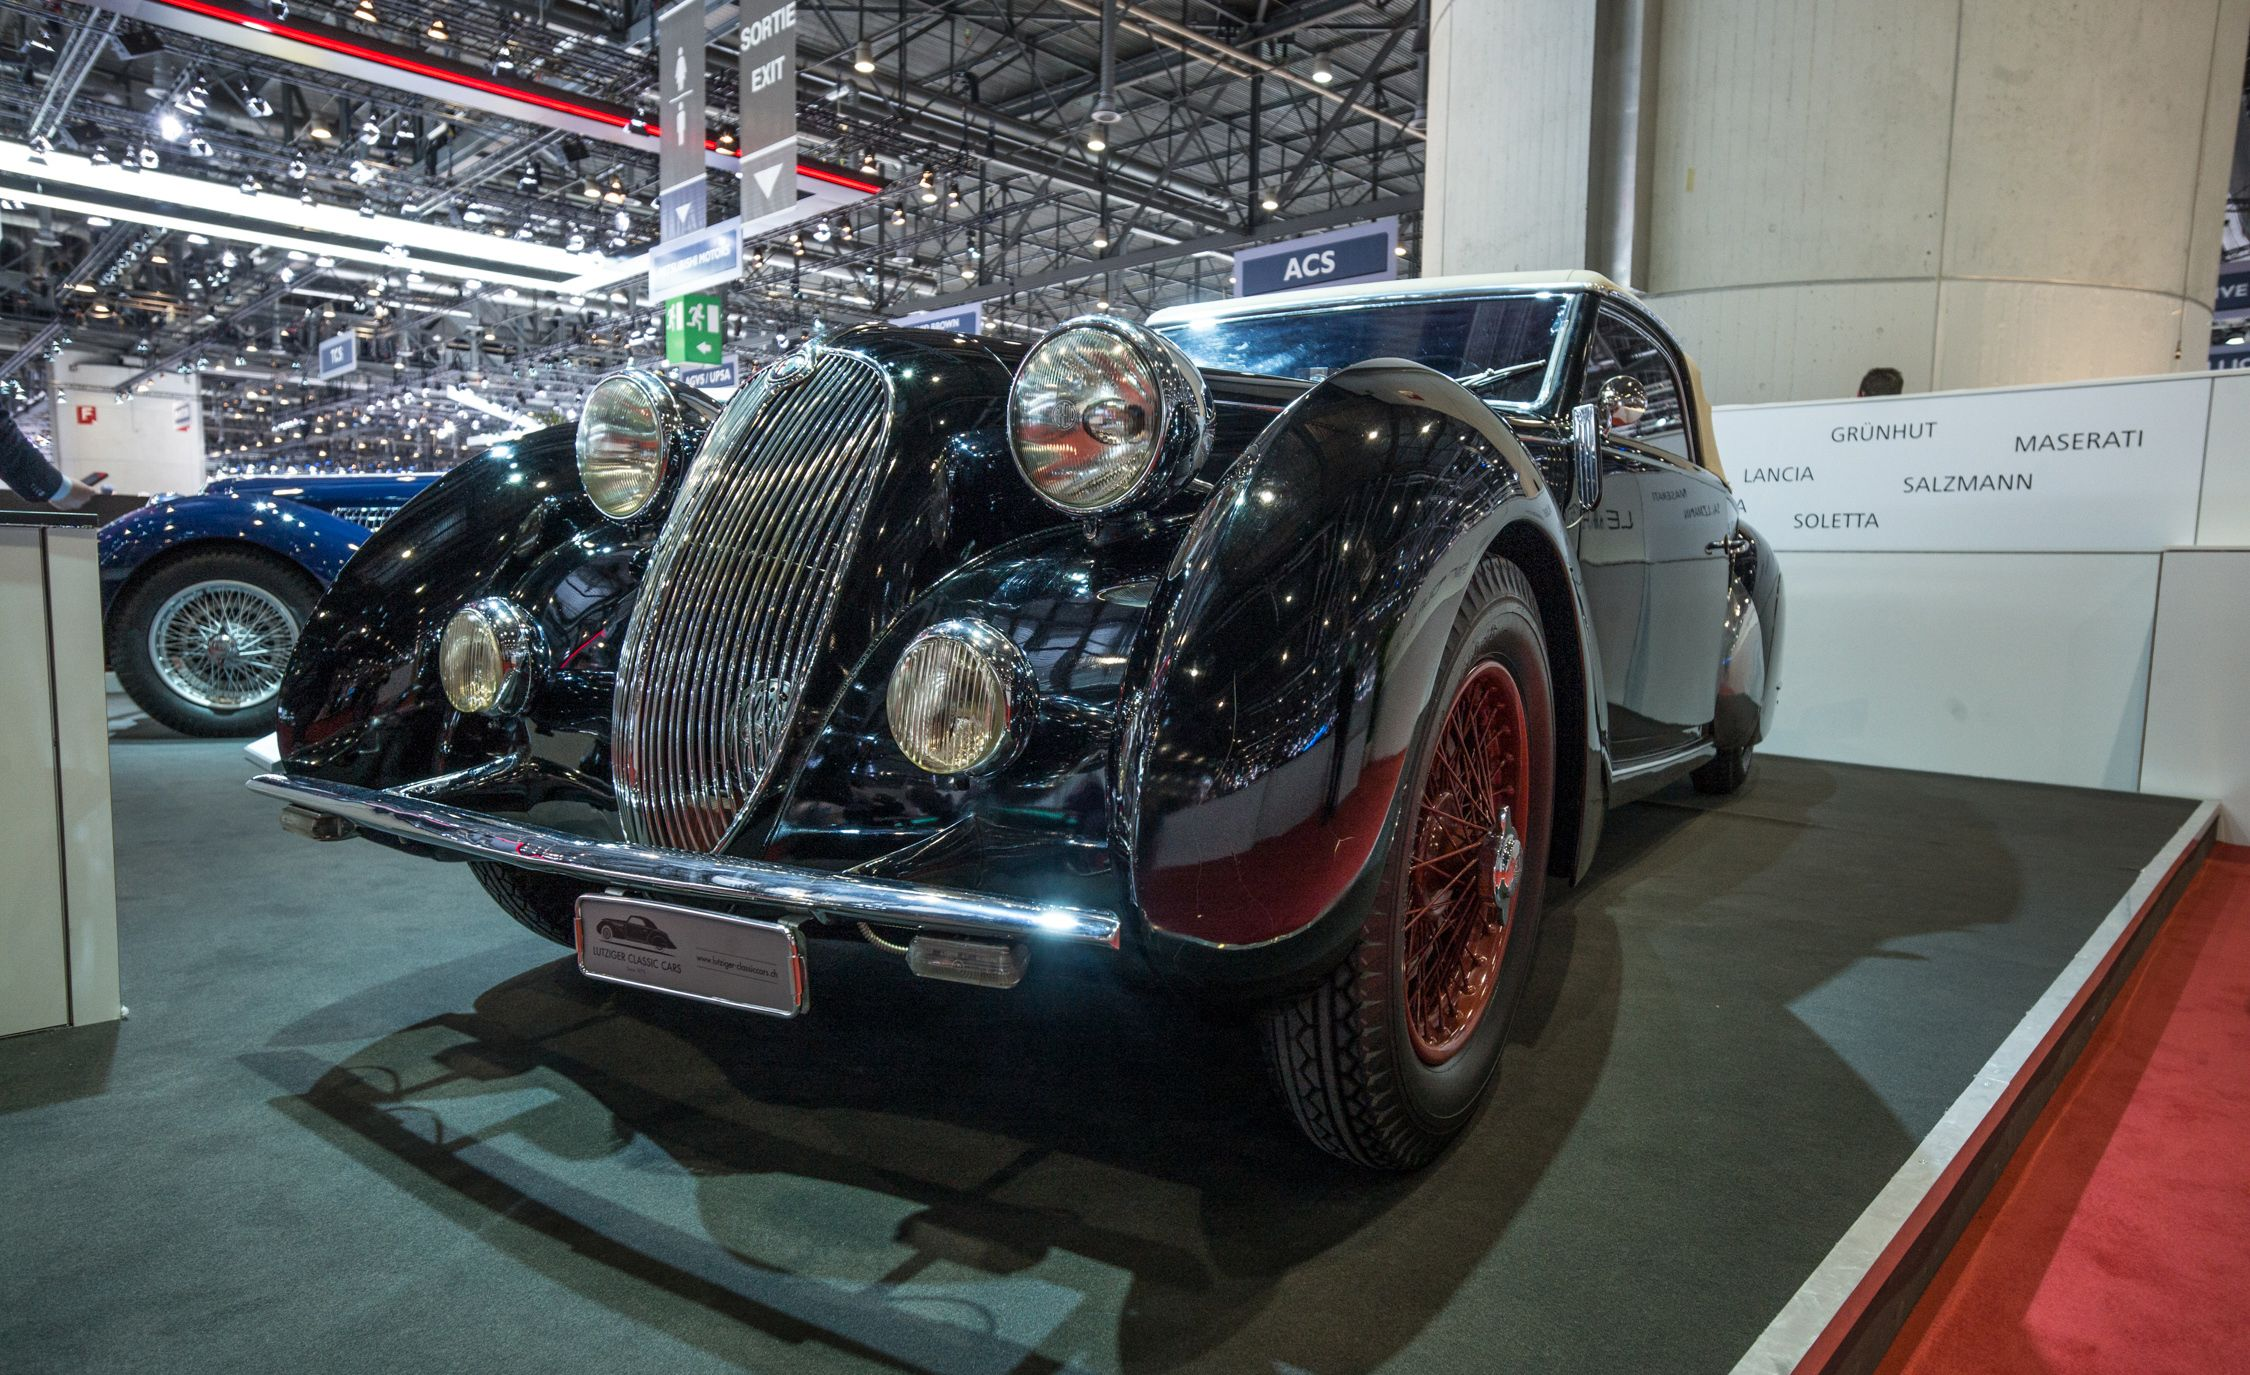 The Coolest Vintage Cars at the 2018 Geneva Auto Show   Flipbook ...